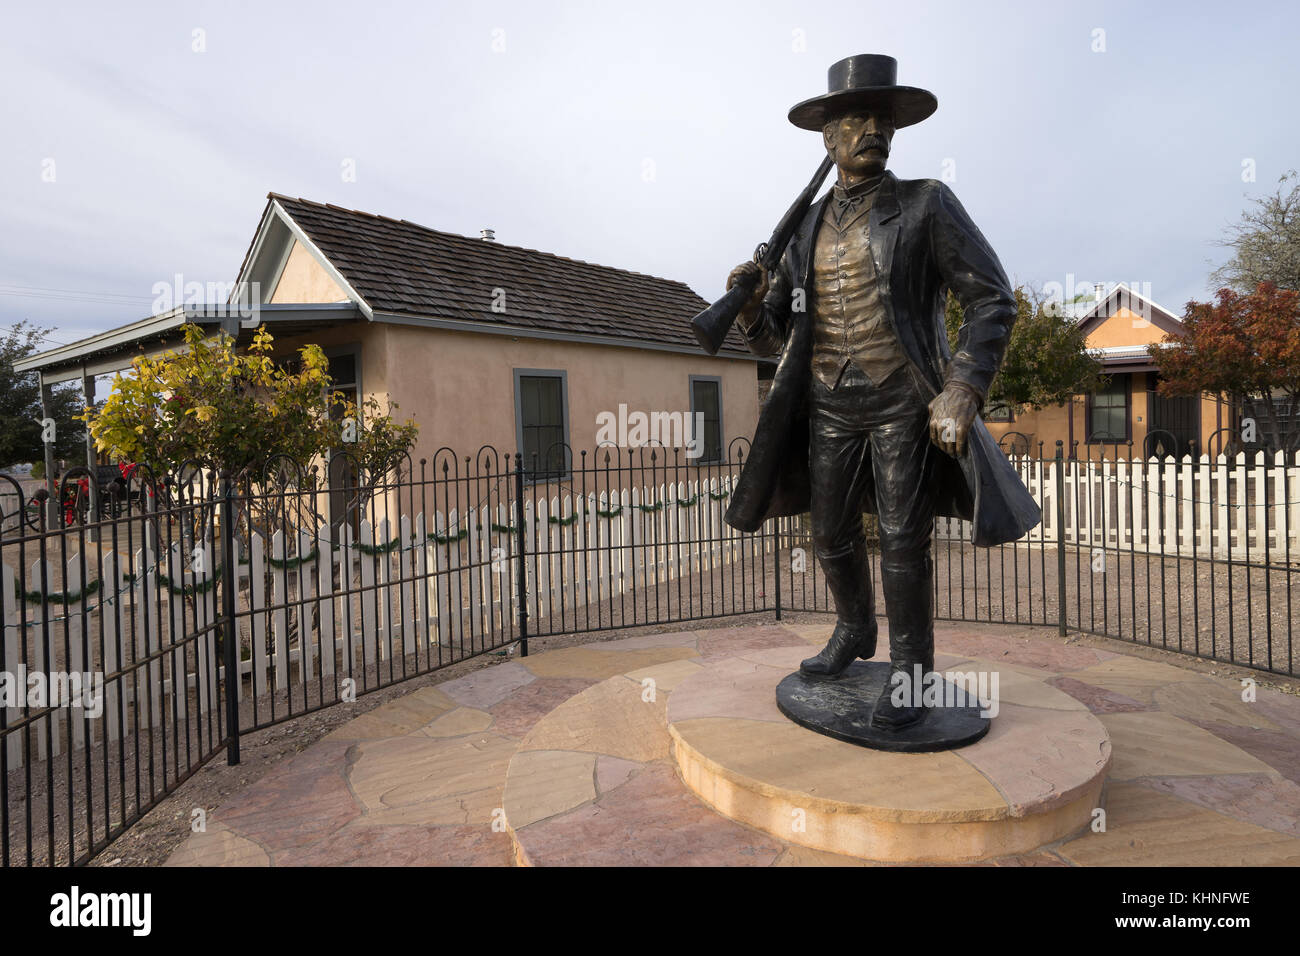 Wyatt Earp statue in Tombstone Arizona - Stock Image